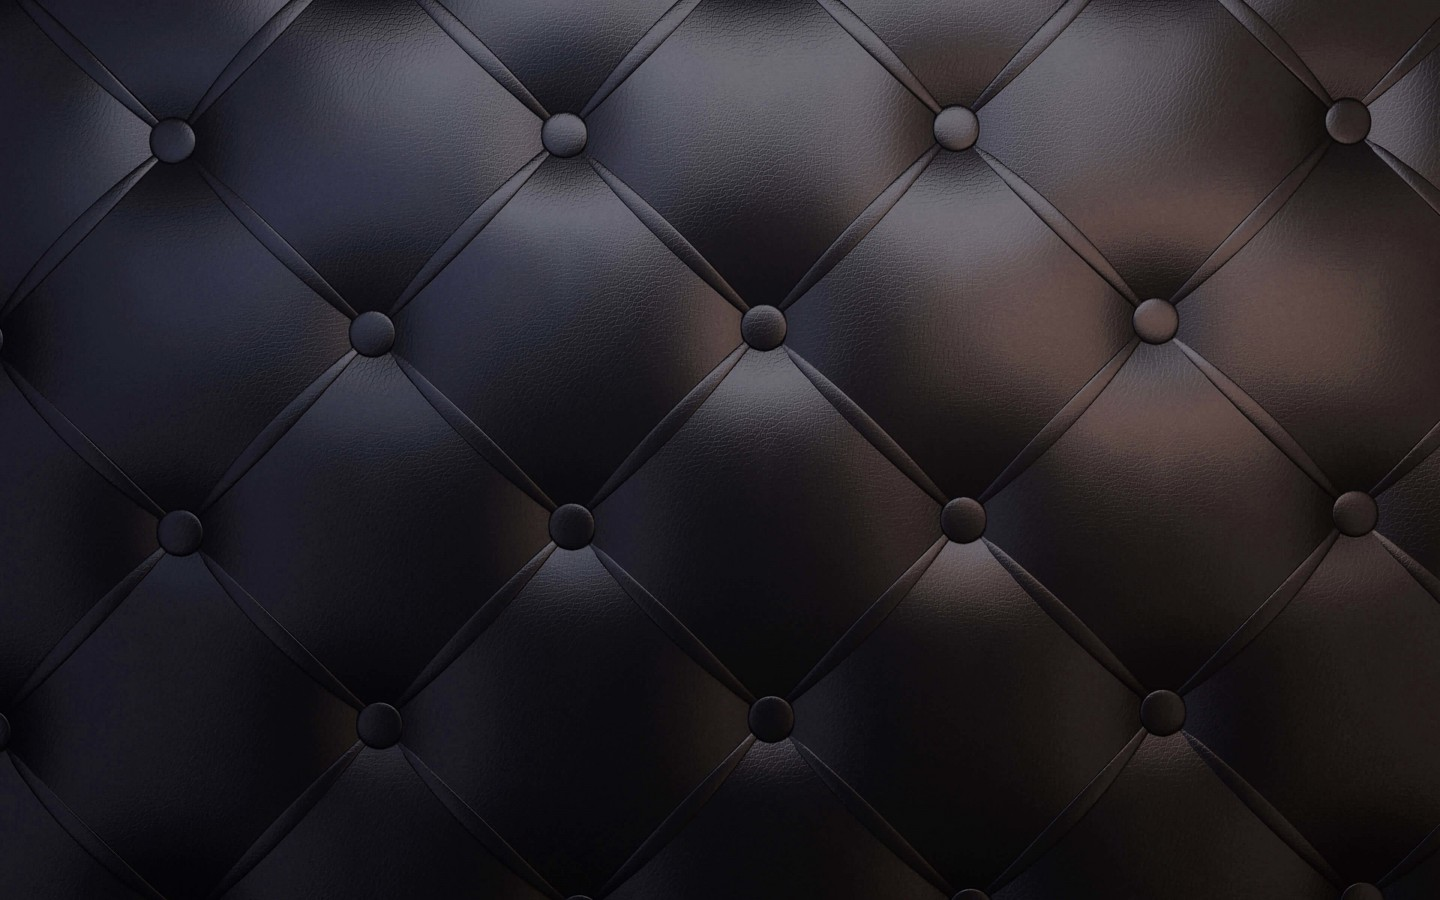 Black Leather Vintage Sofa Wallpaper for Desktop 1440x900